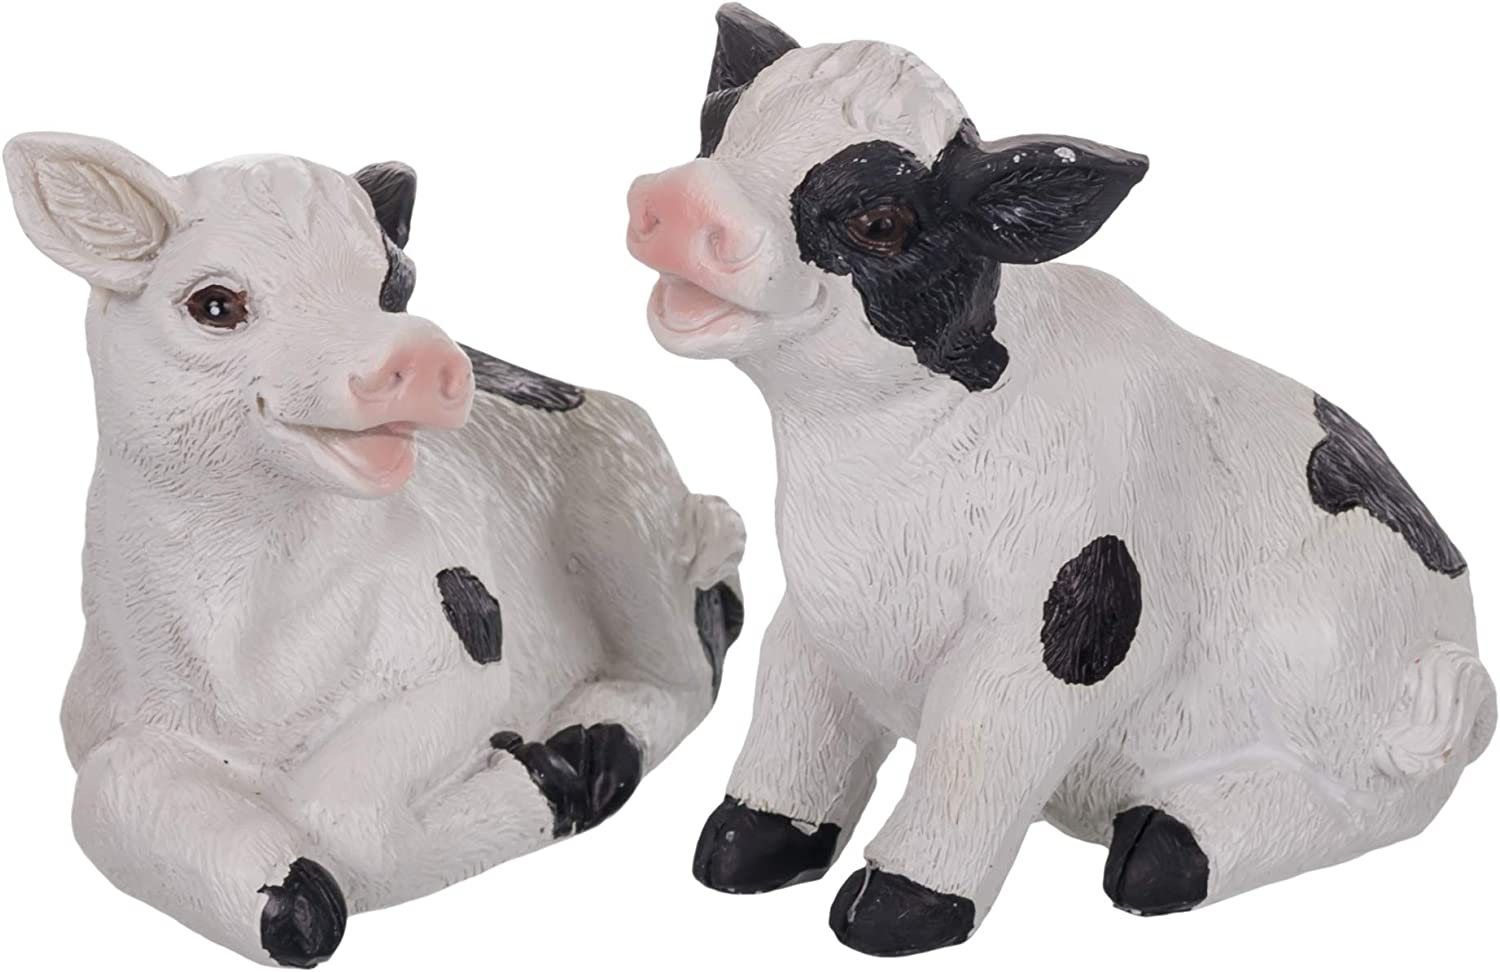 The Country House Lil Cows Holstein Spot 4 inch Resin Stone Collectible Figurines Set of 2